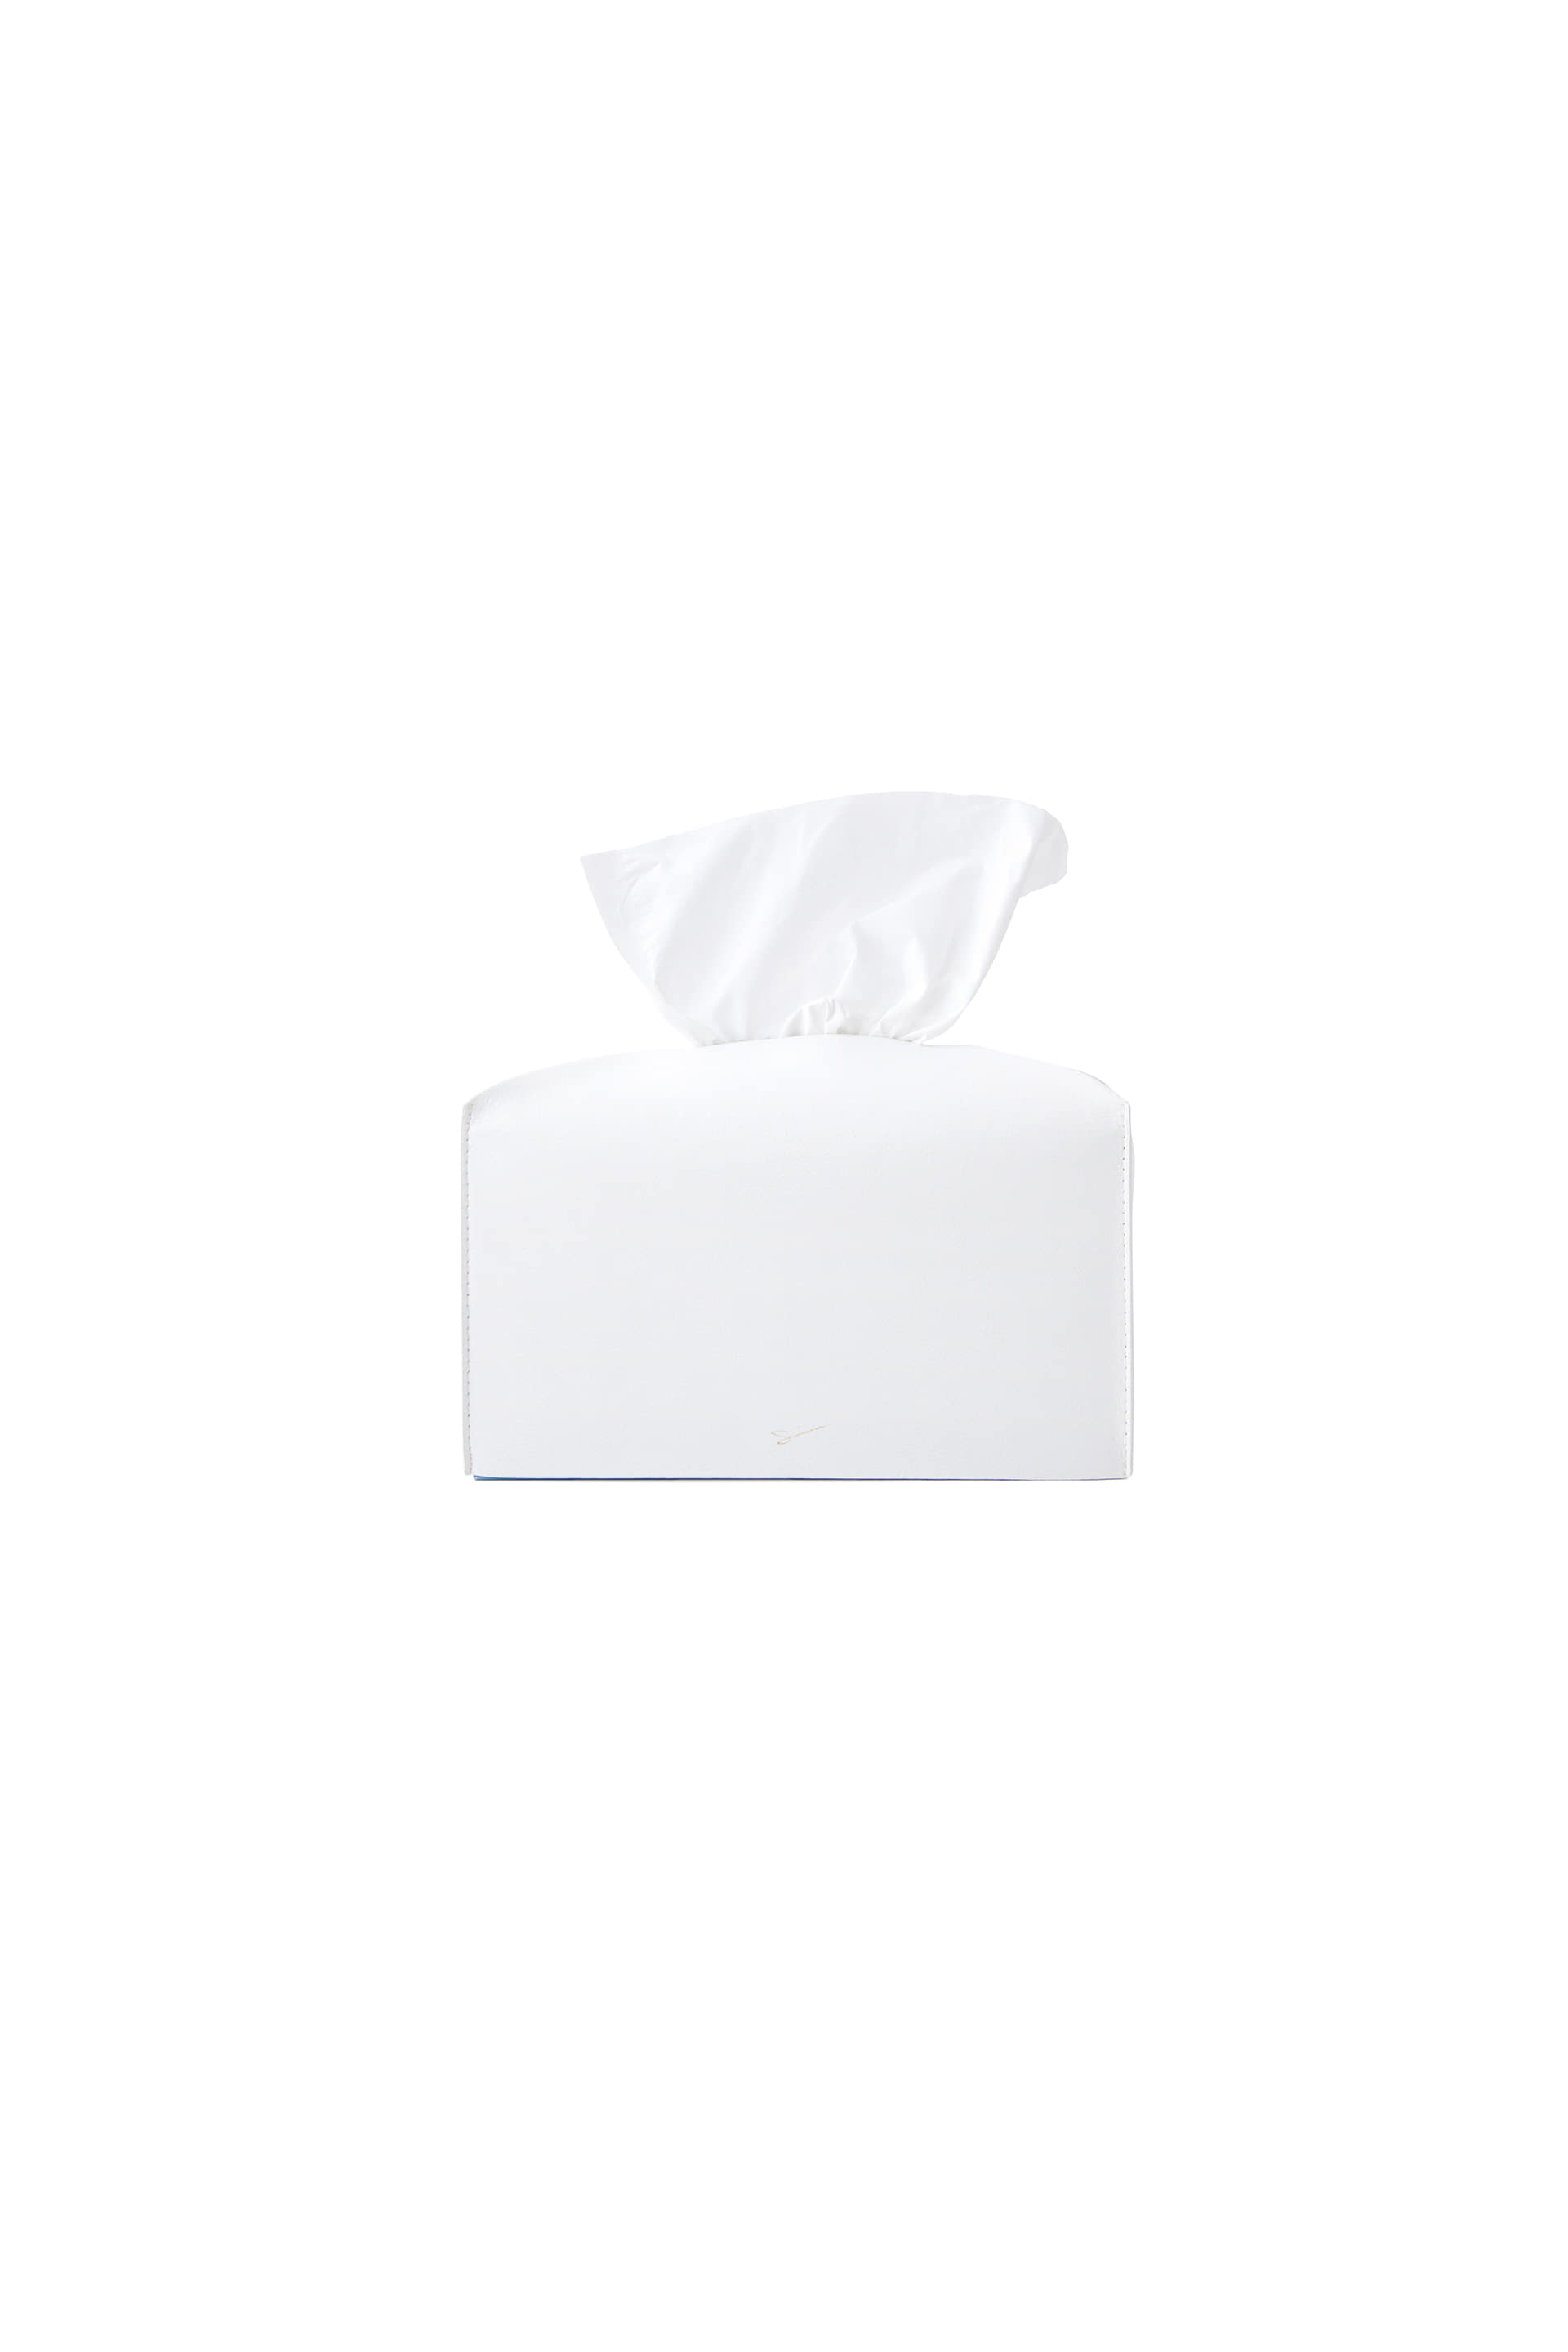 TISSUE CASE L 23 White